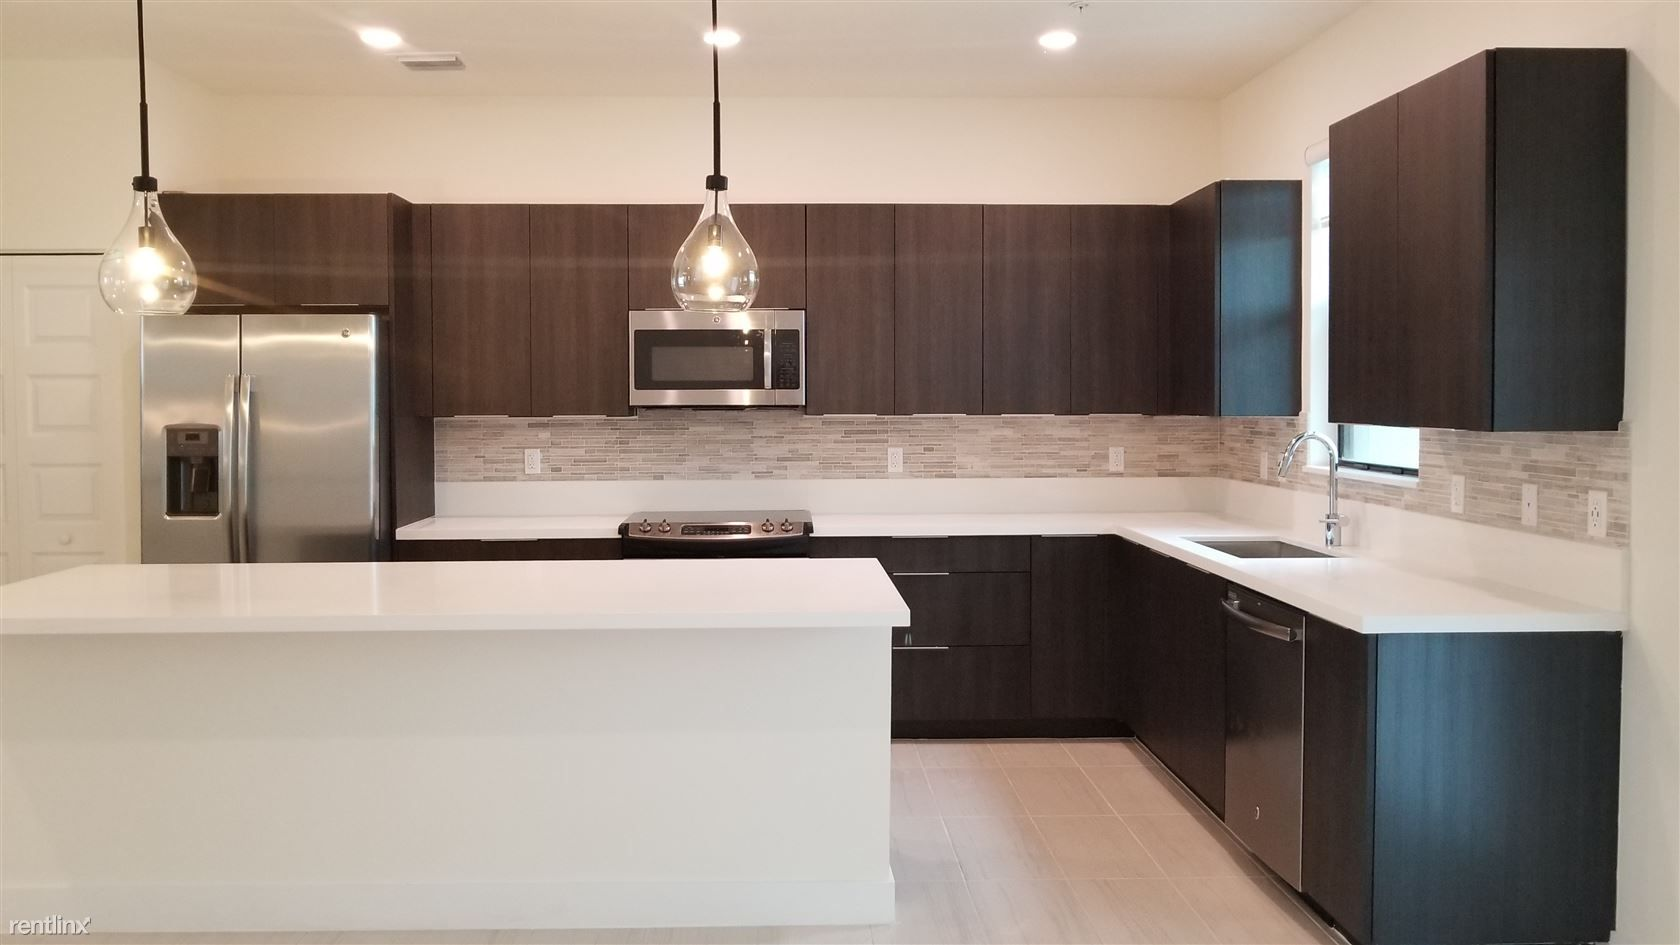 Highland At Park Place for rent